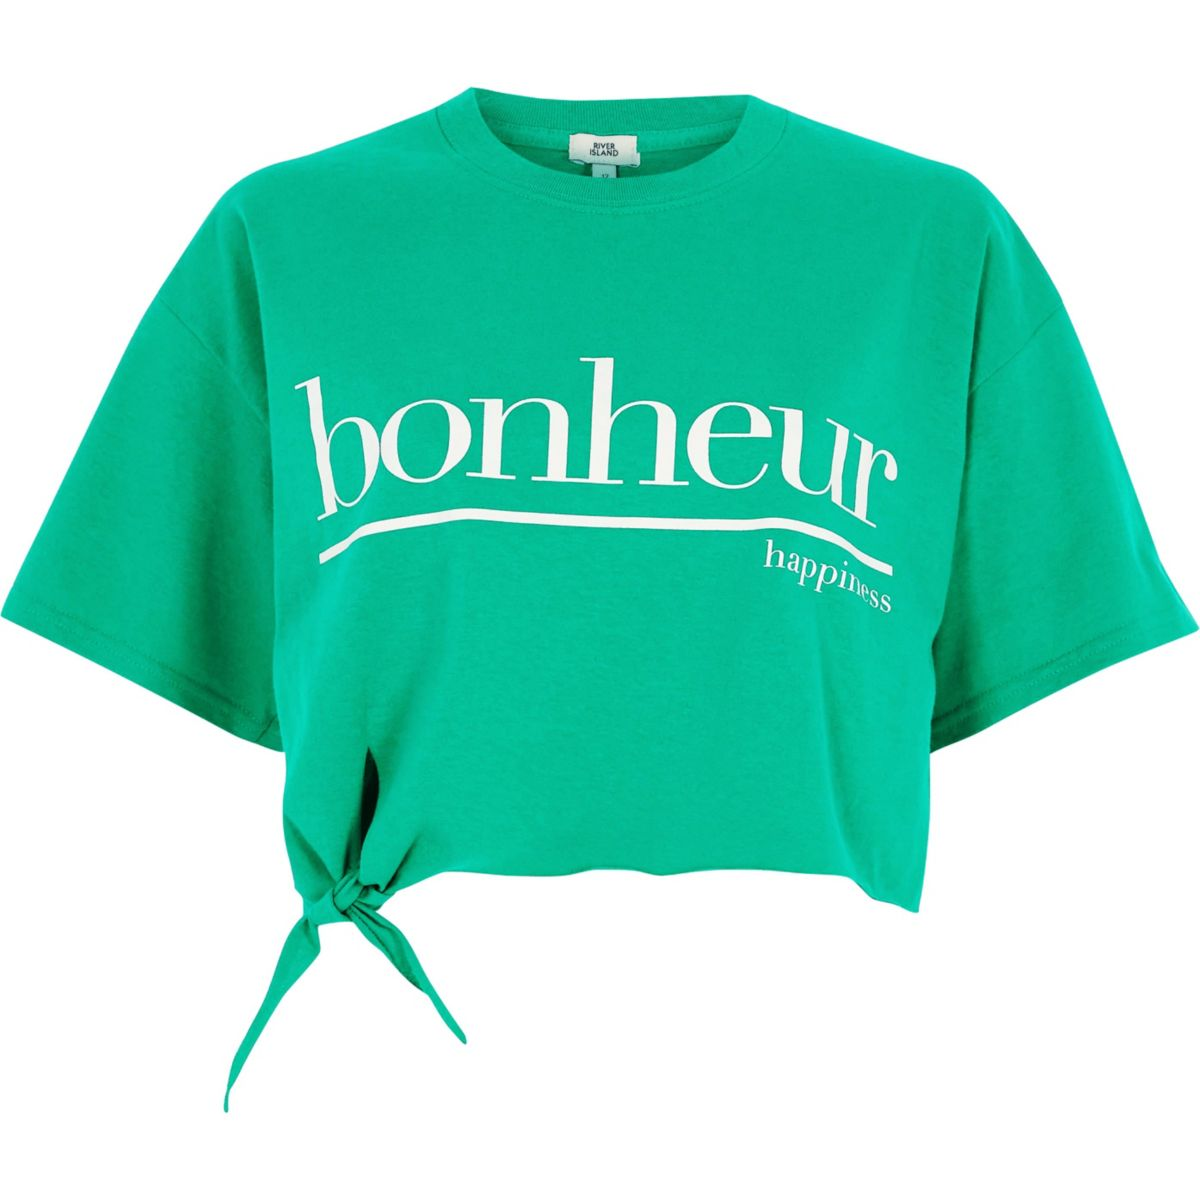 Green 'bonheur' cropped knot front T-shirt